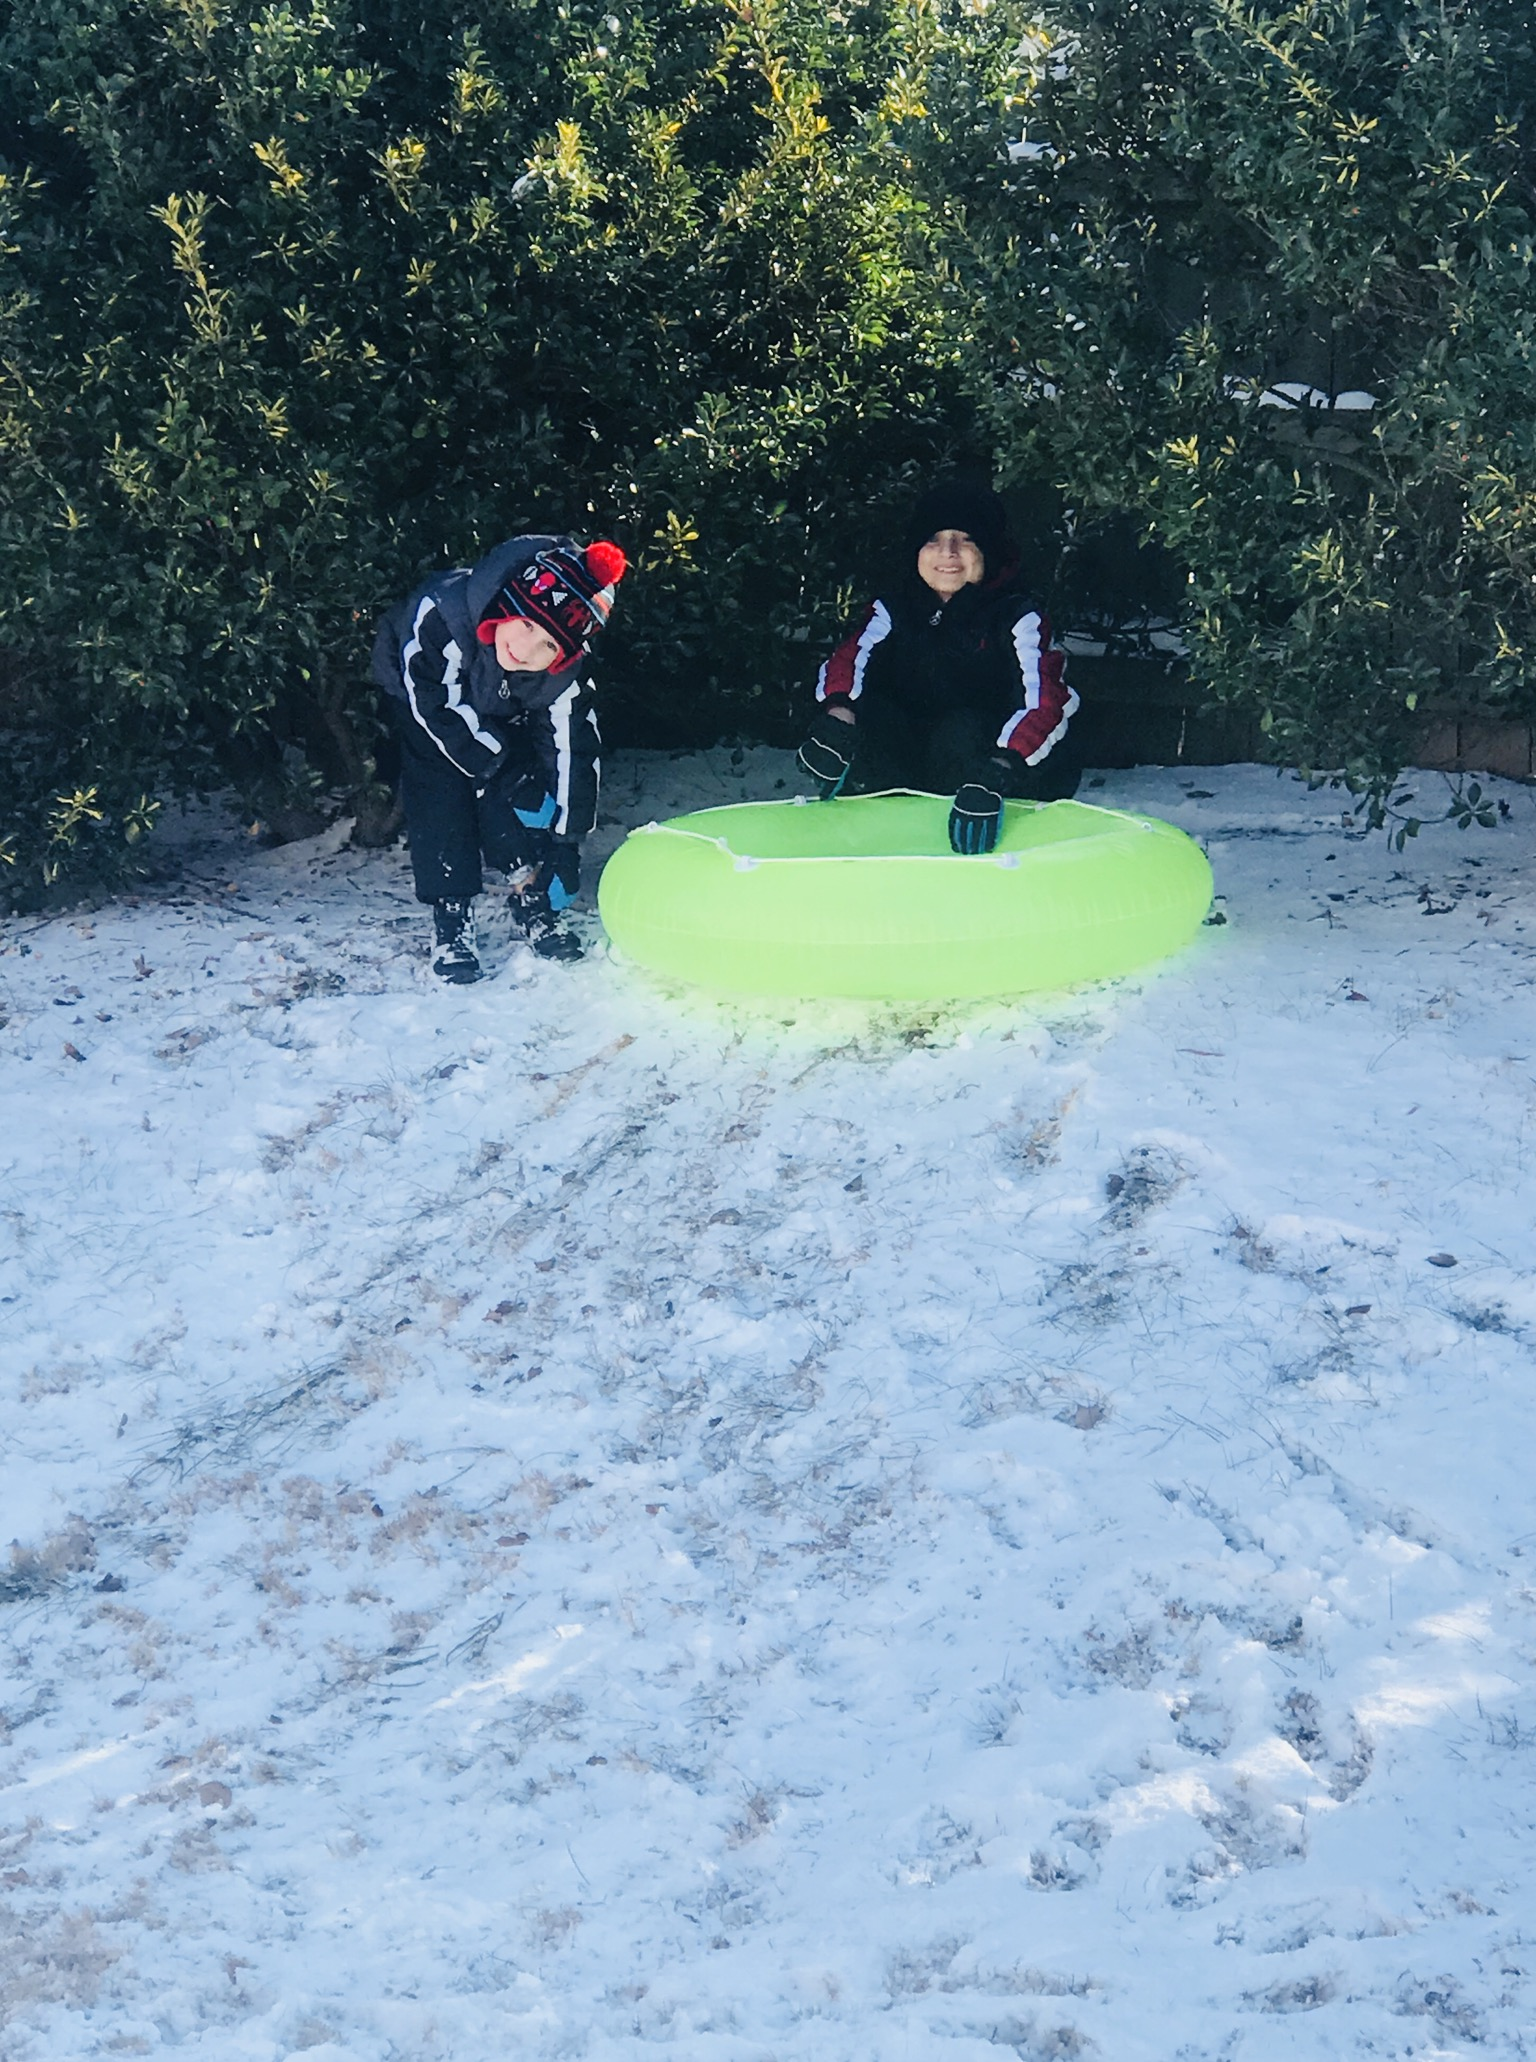 <div class='meta'><div class='origin-logo' data-origin='none'></div><span class='caption-text' data-credit='Heidi Camposano - ABC11 Eyewitness'>Connor and Caden brothers from Clayton enjoying a snow day!</span></div>